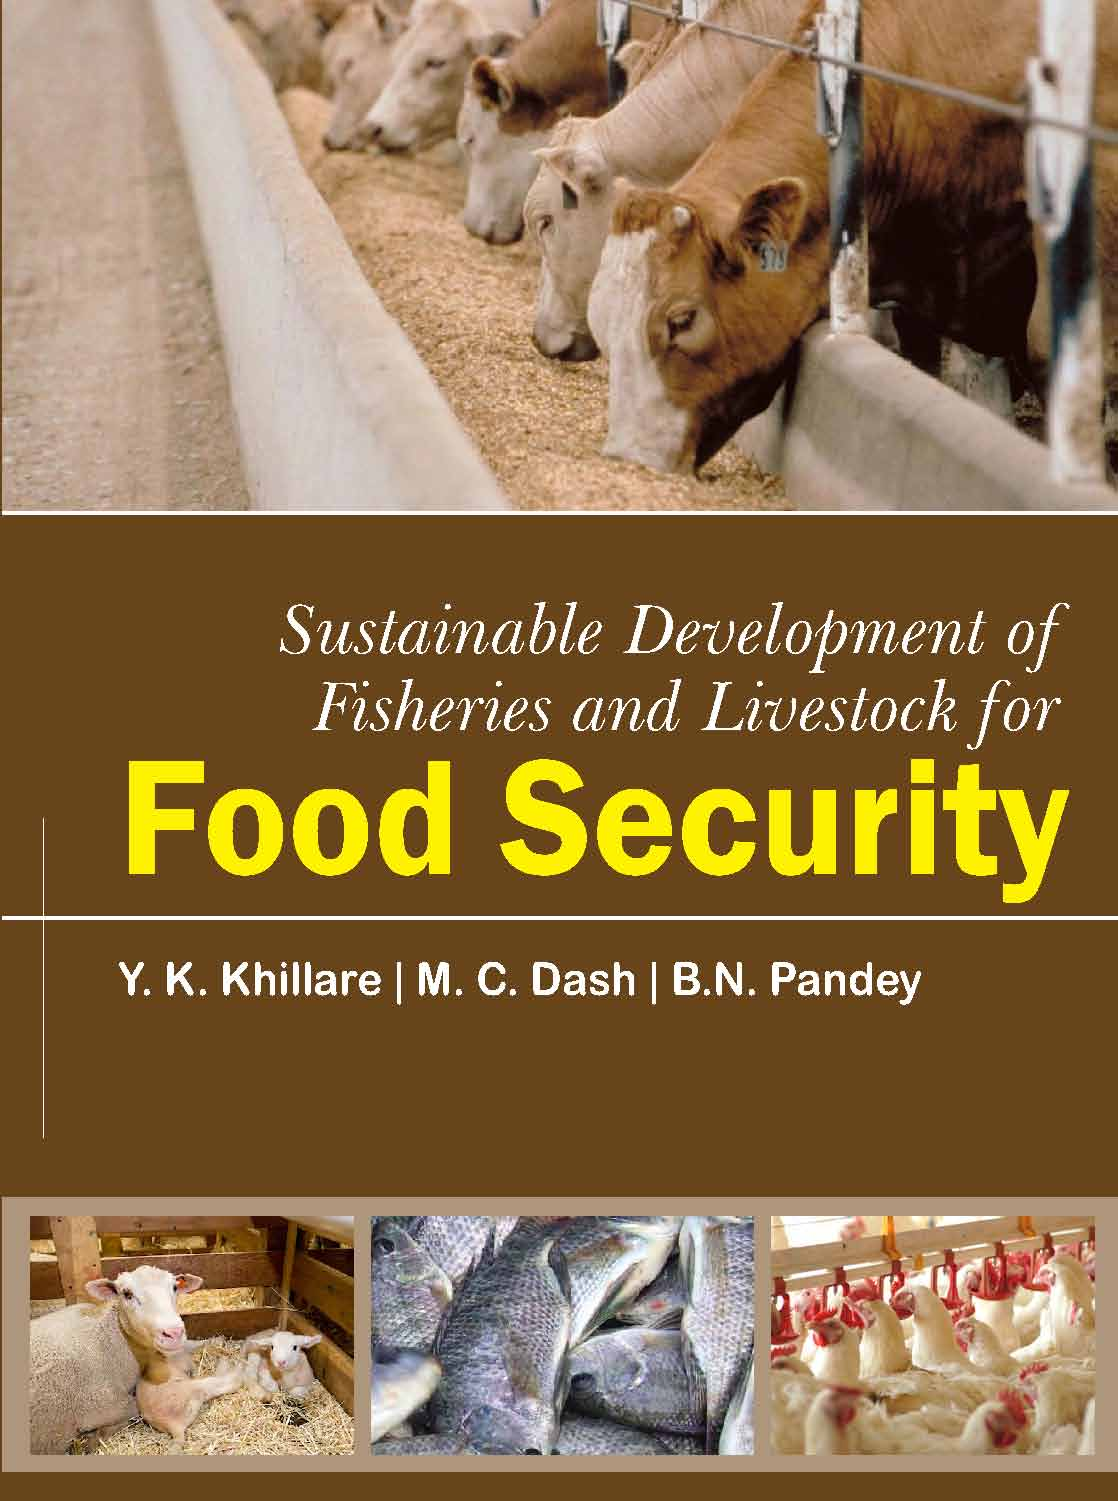 Sustainable Development of Fisheries and Livestock Food Security